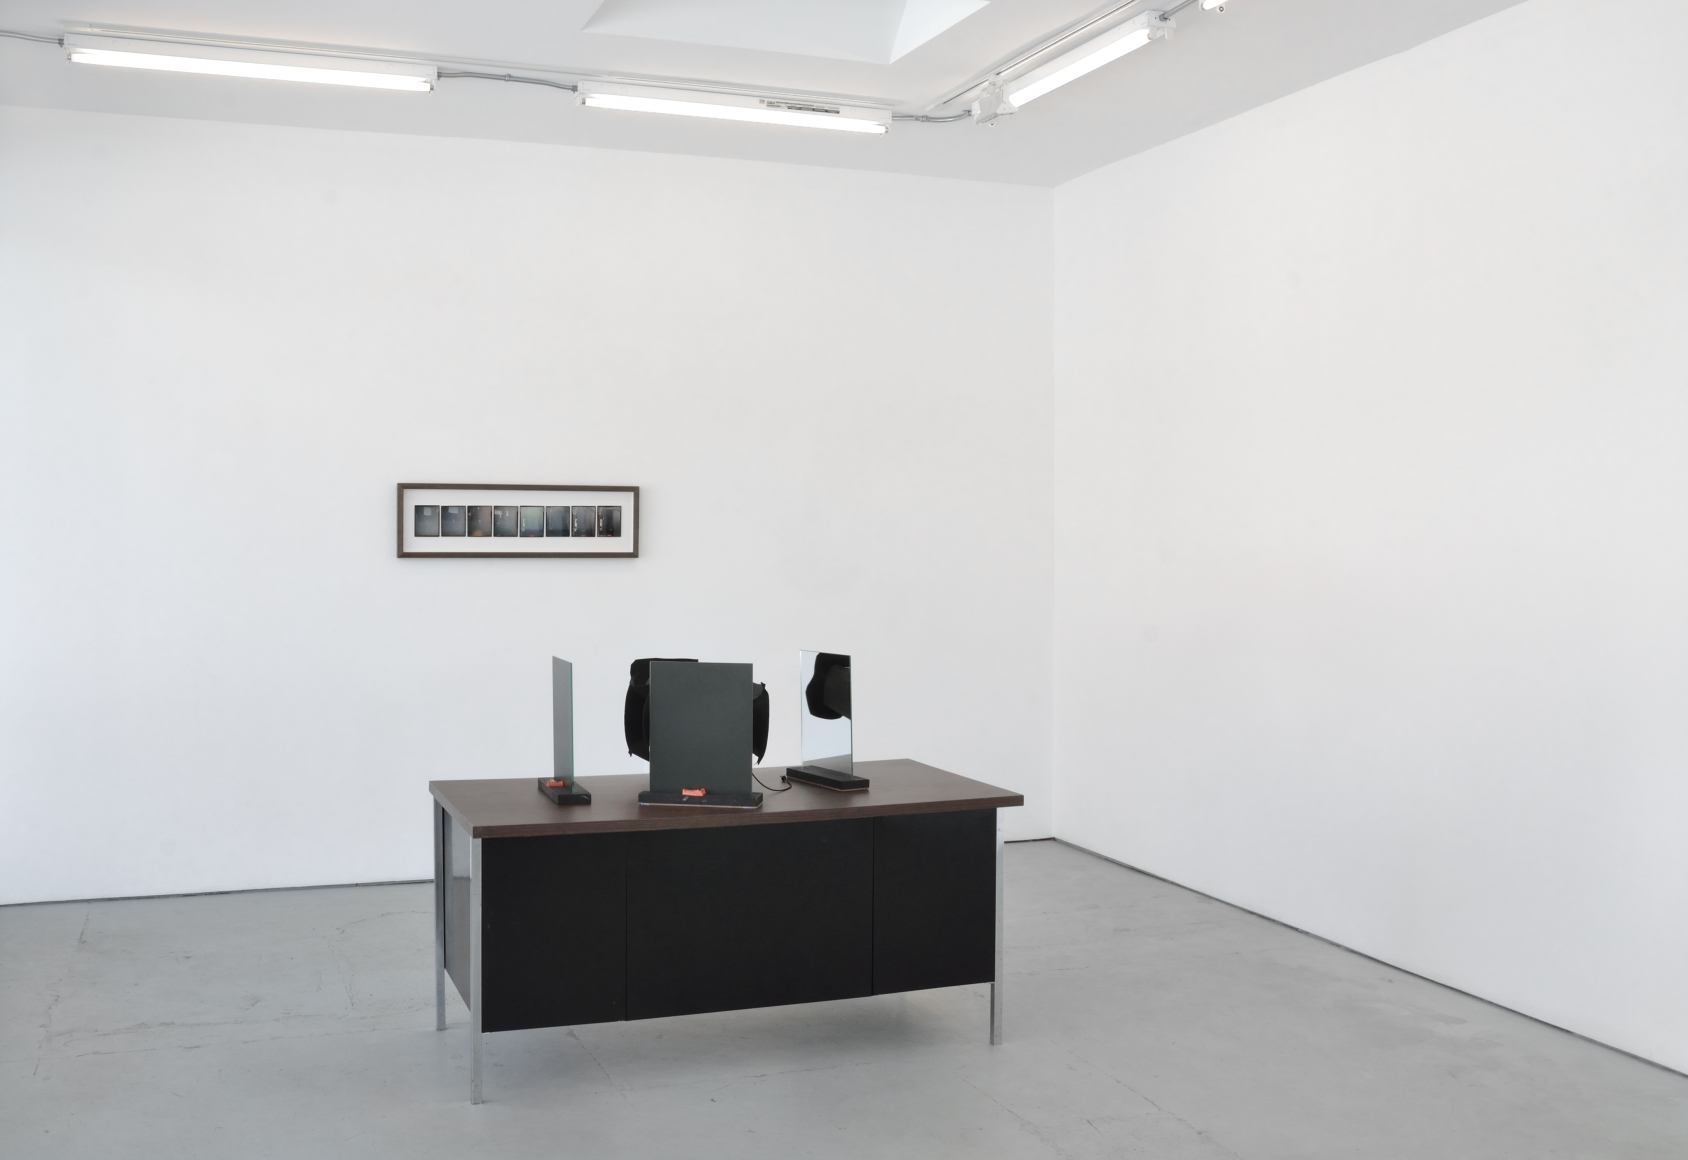 Installation view audience ≒ one